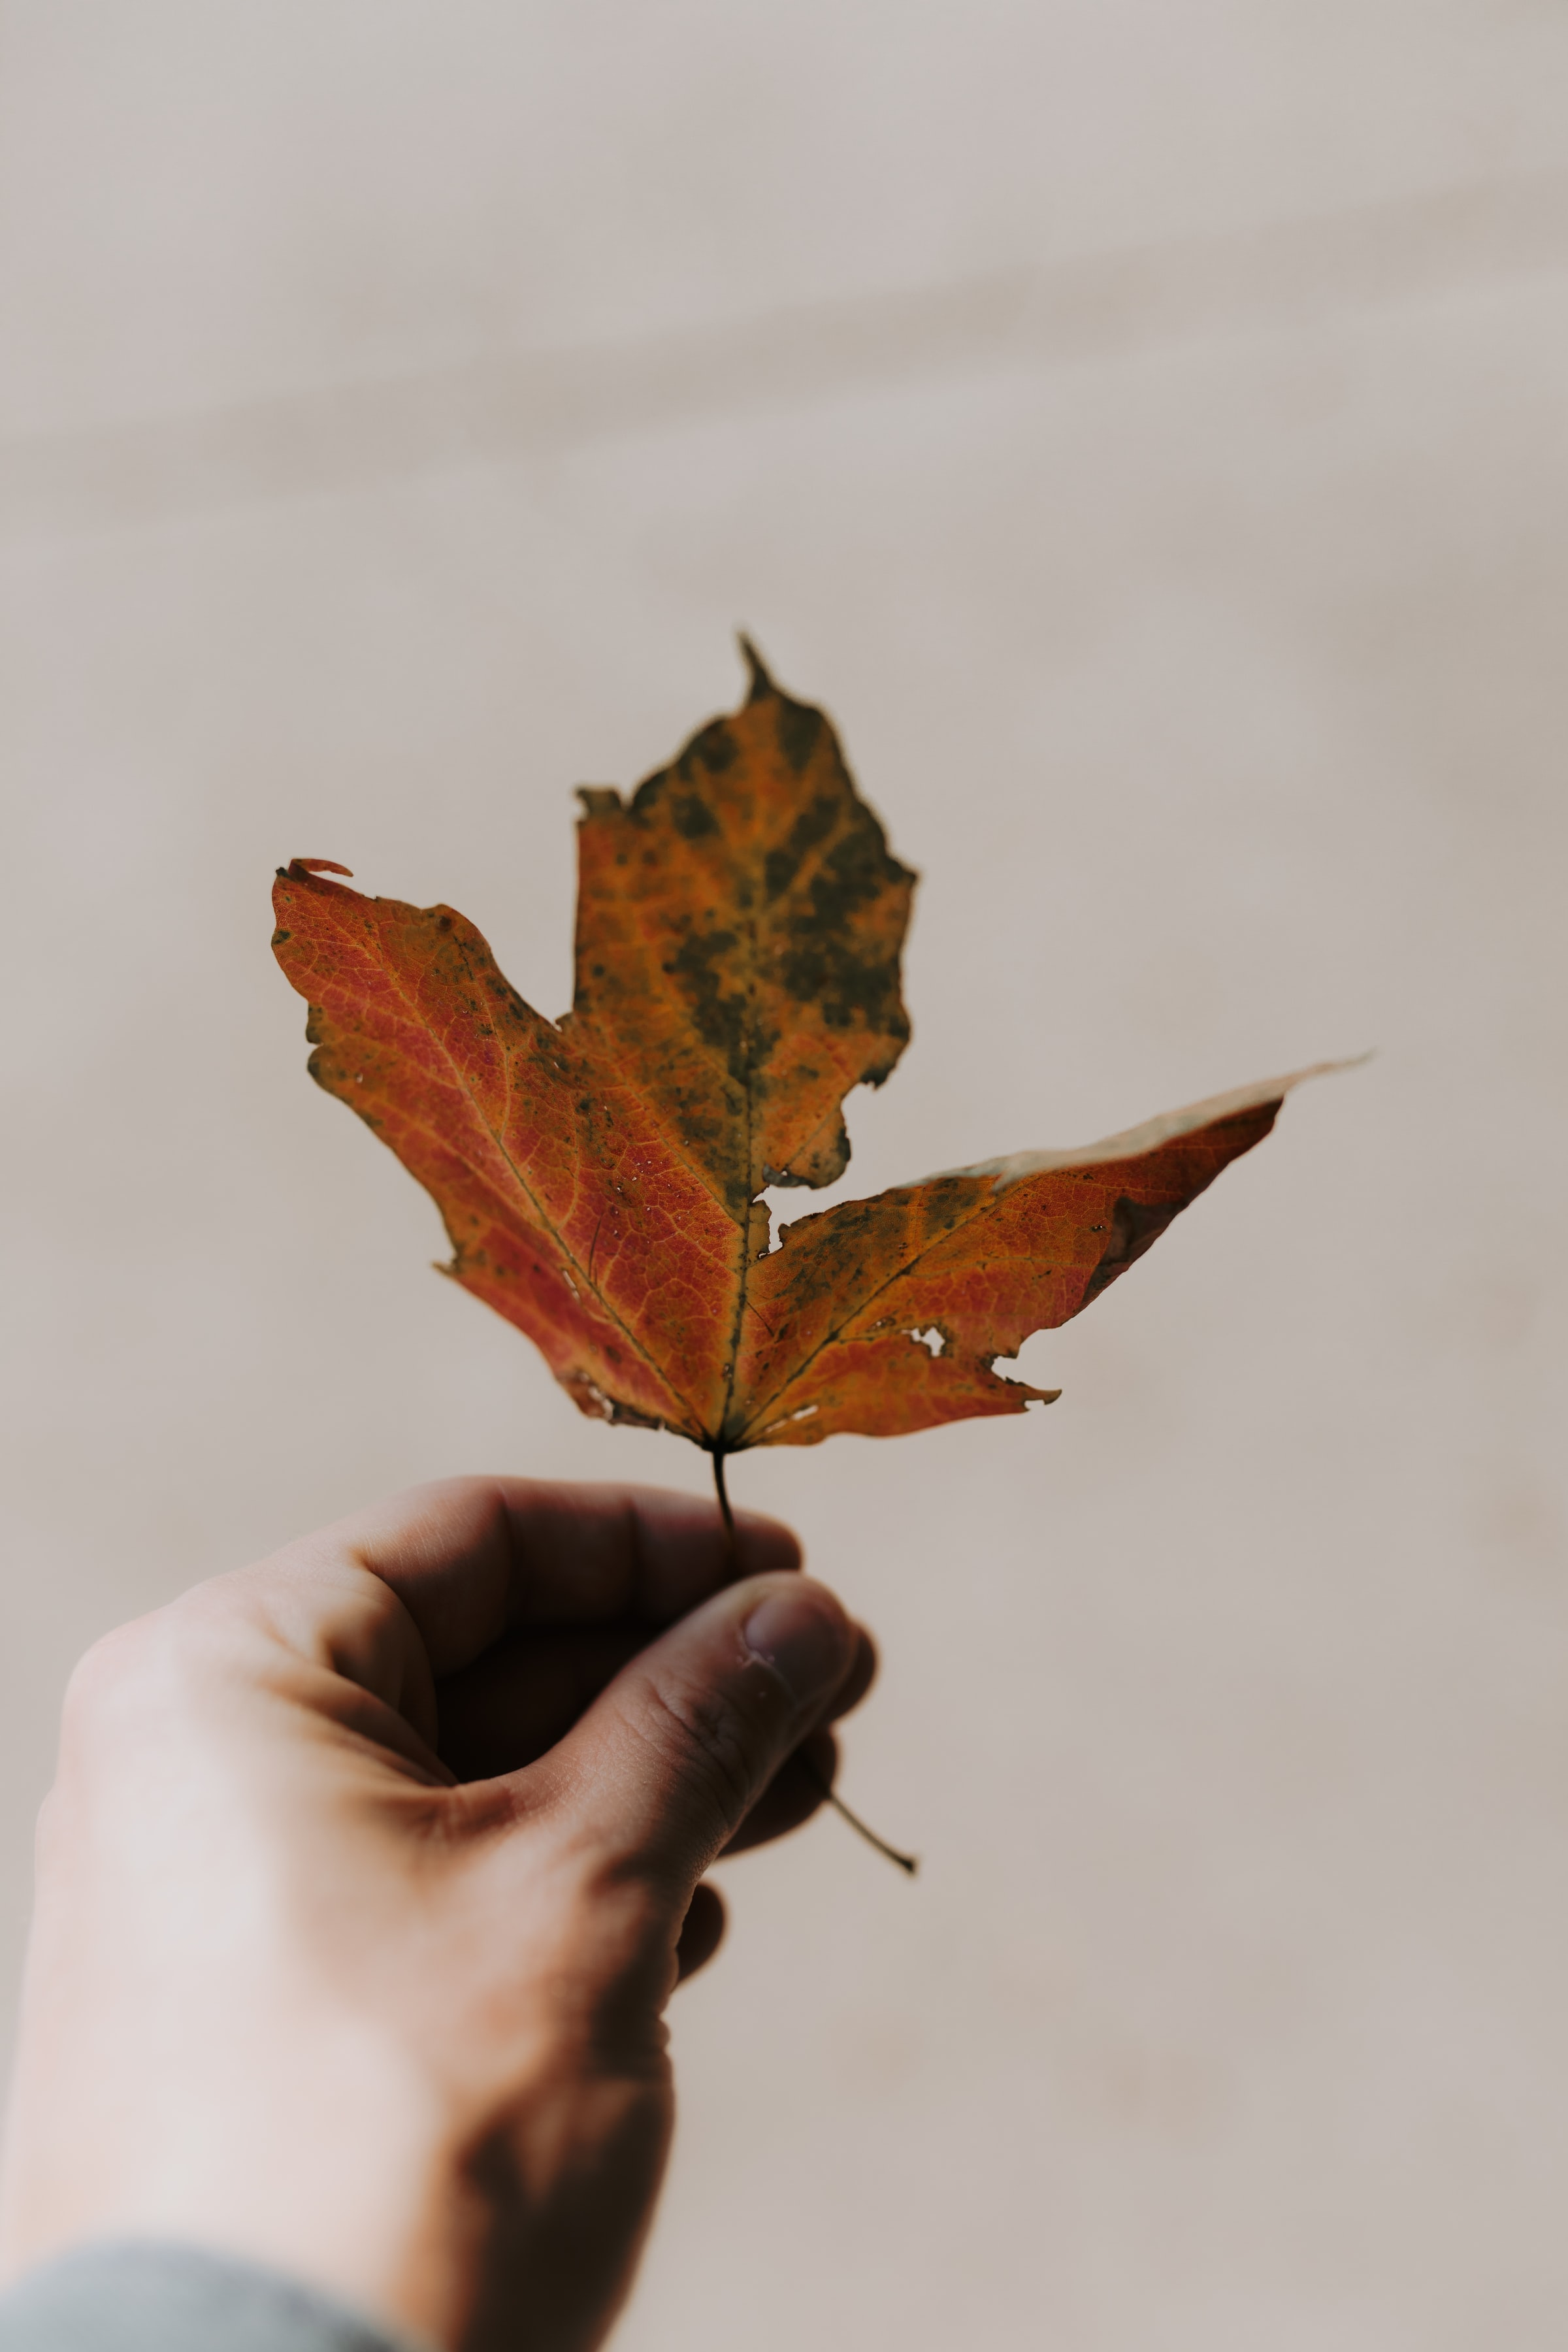 121726 download wallpaper Miscellanea, Miscellaneous, Maple, Hand, Sheet, Leaf, Autumn screensavers and pictures for free